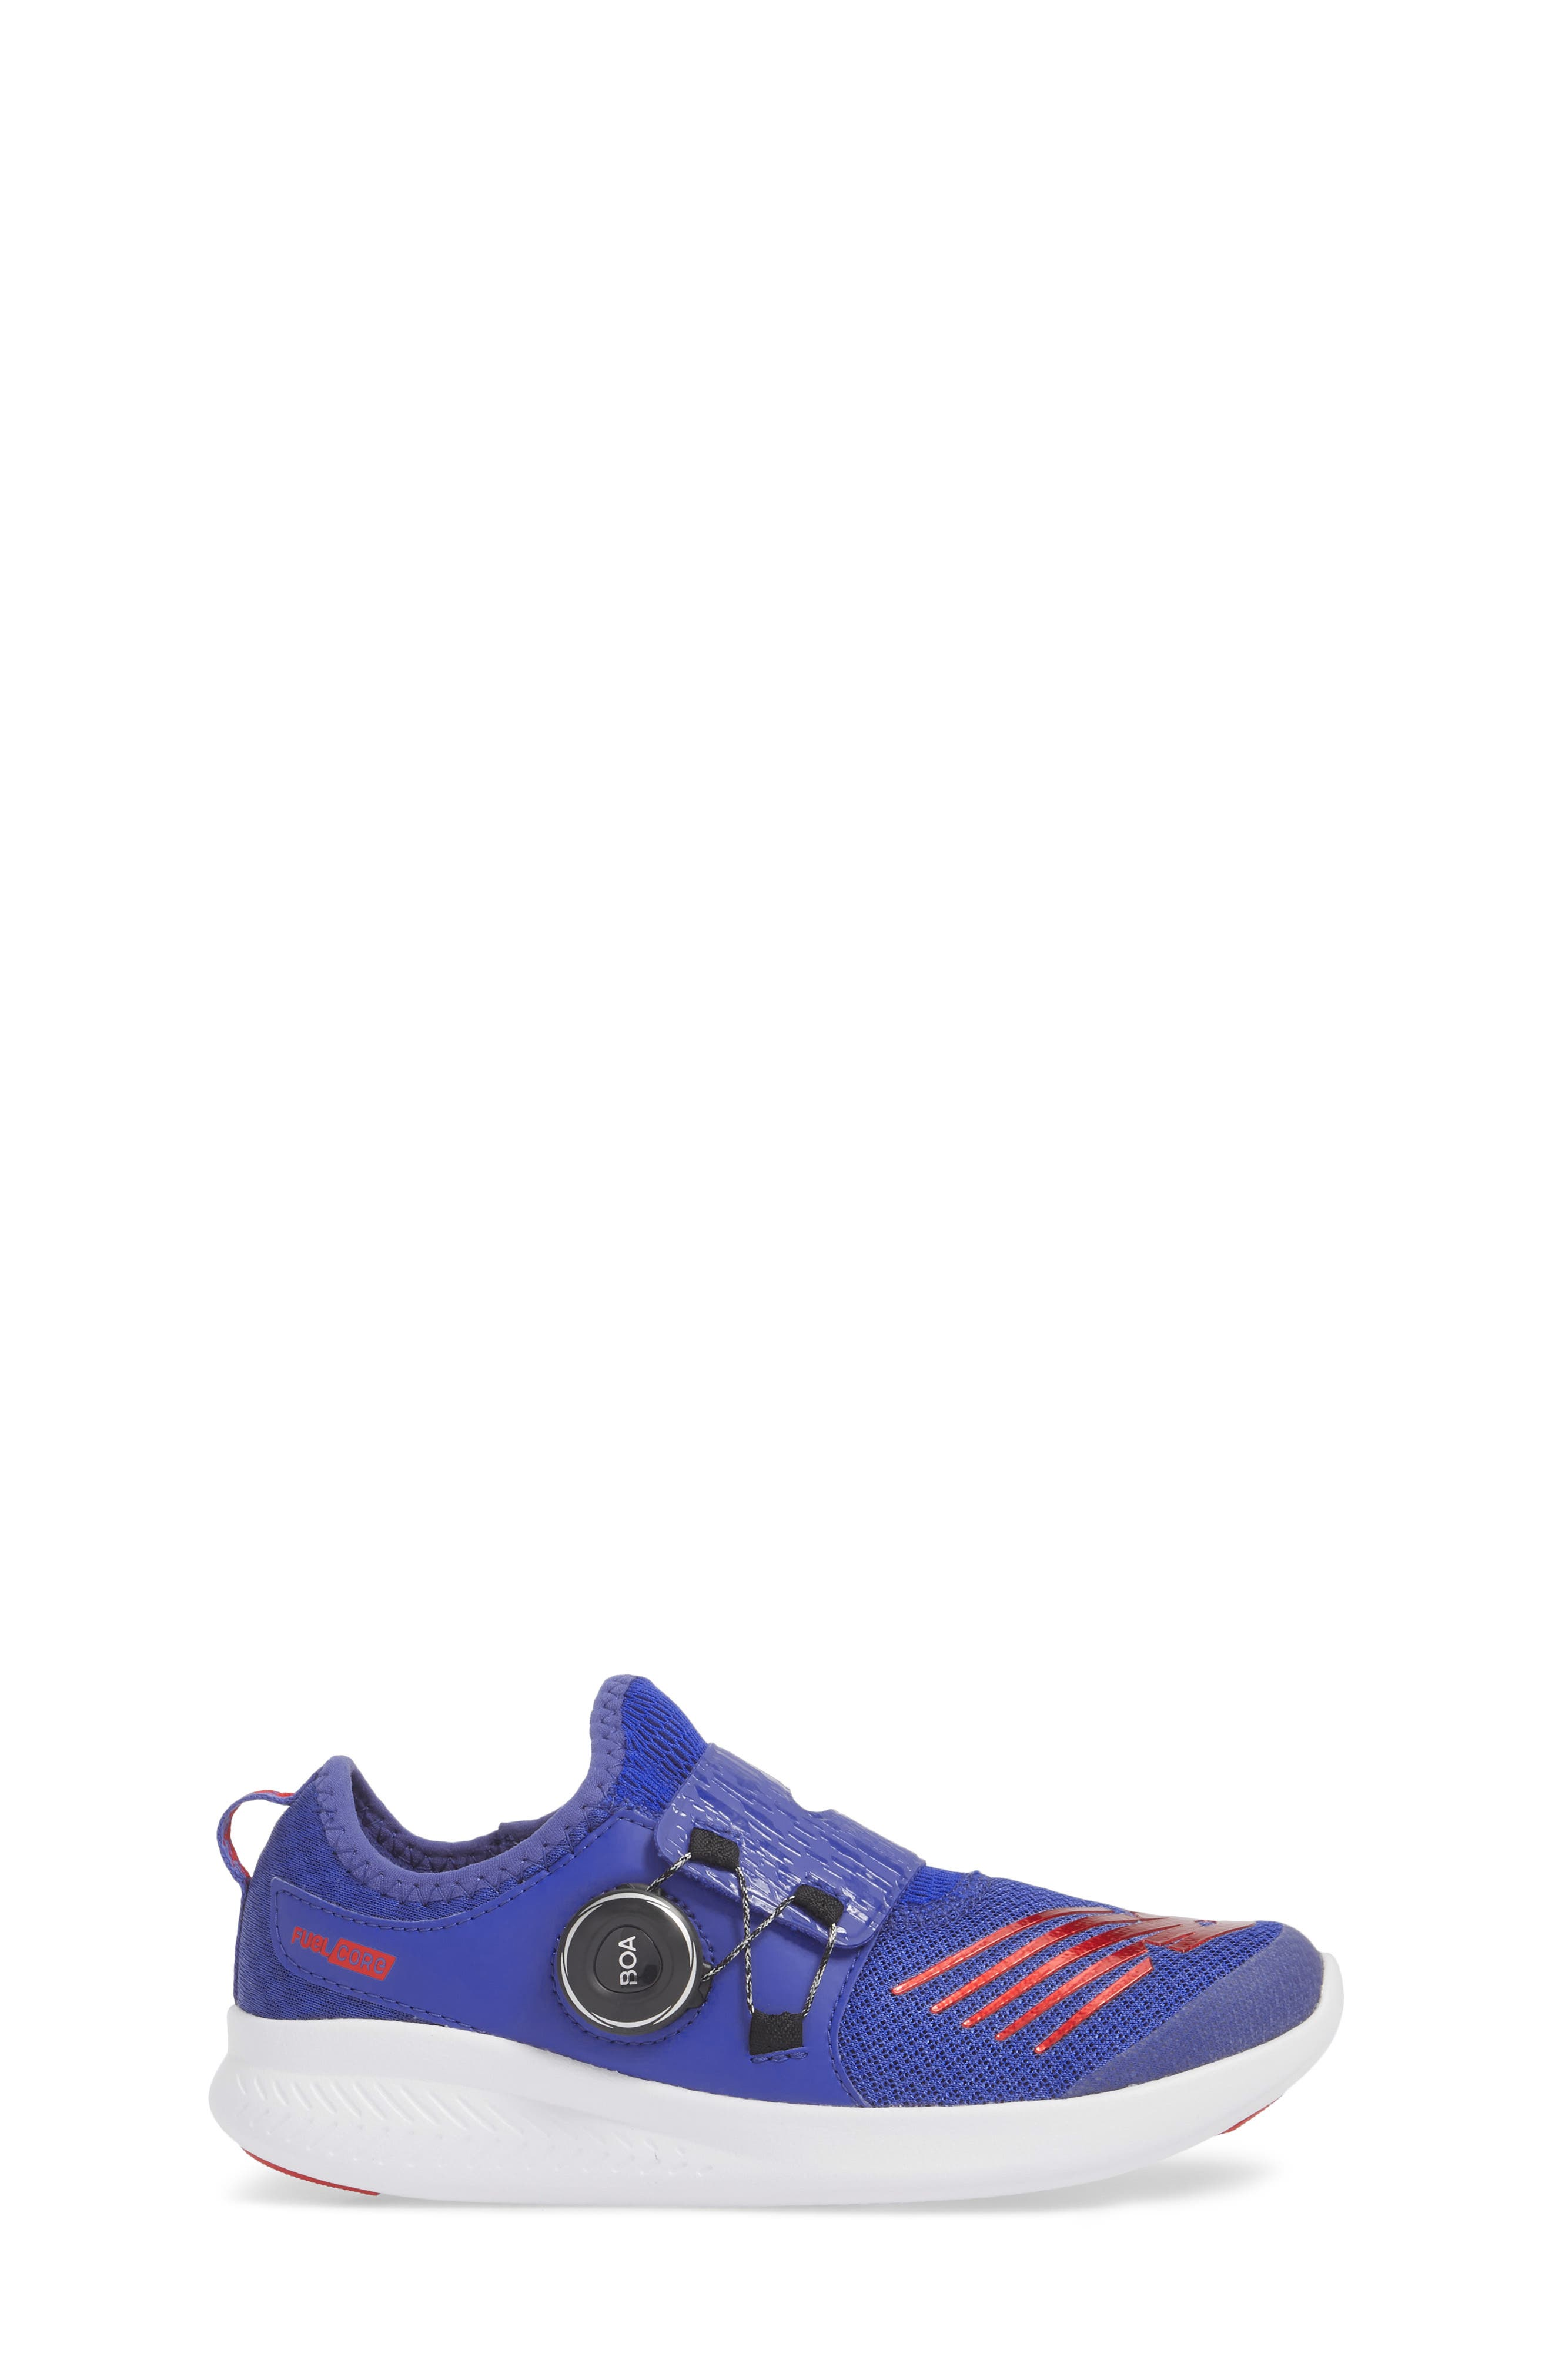 BKO Running Shoe,                             Alternate thumbnail 9, color,